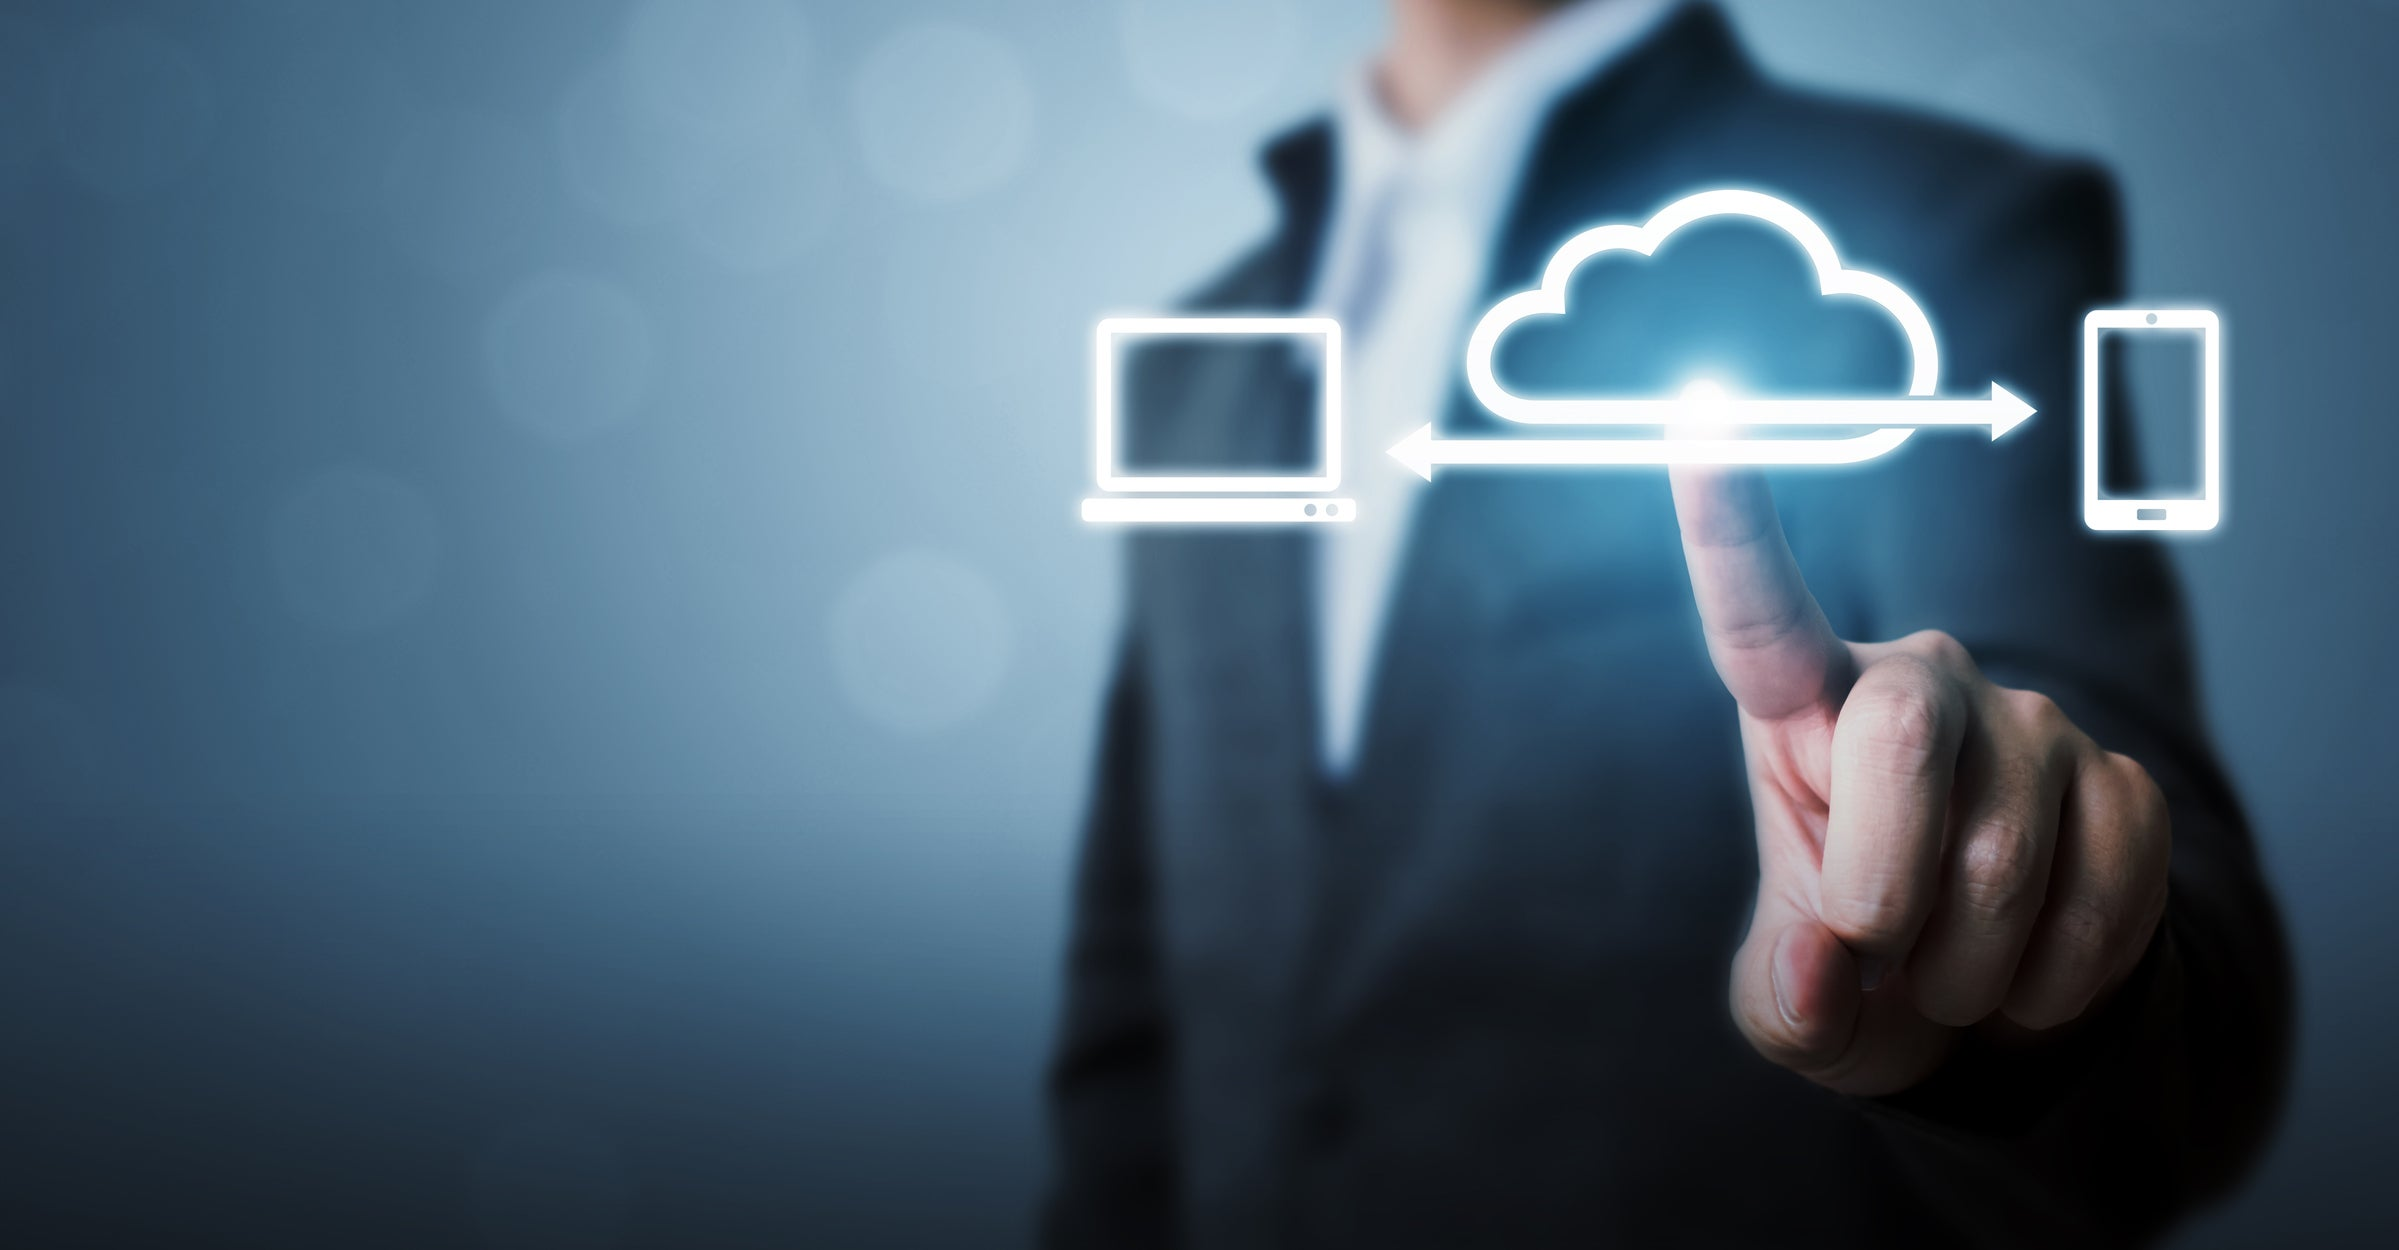 Cloud computing illustration with man in the background